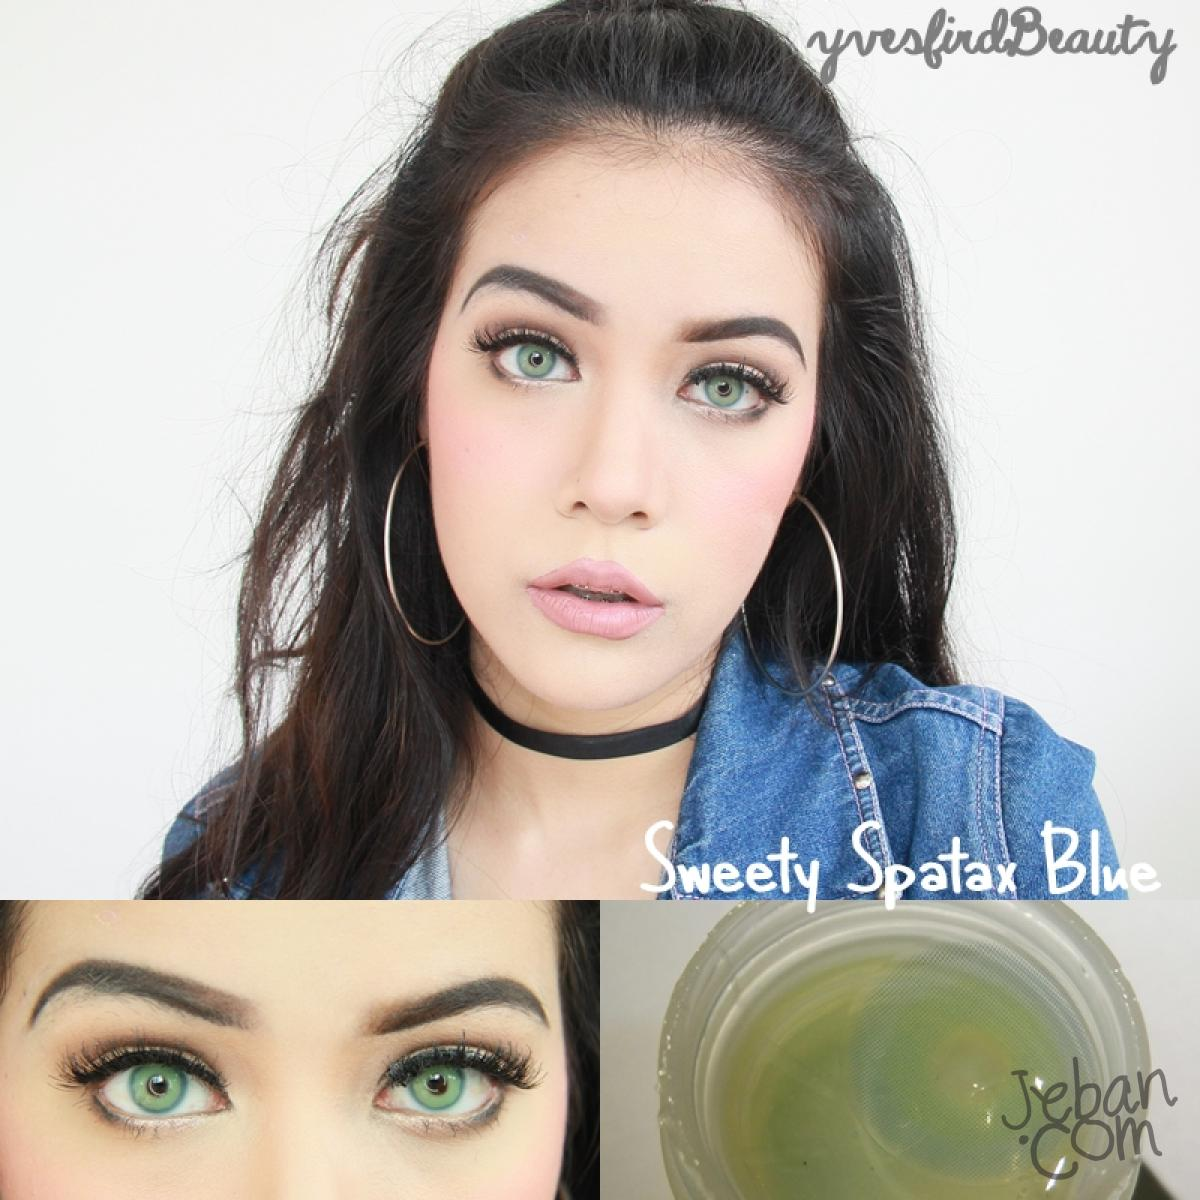 Sweety Spatax Blue Colored Eye Lenses Bbbeautycontact